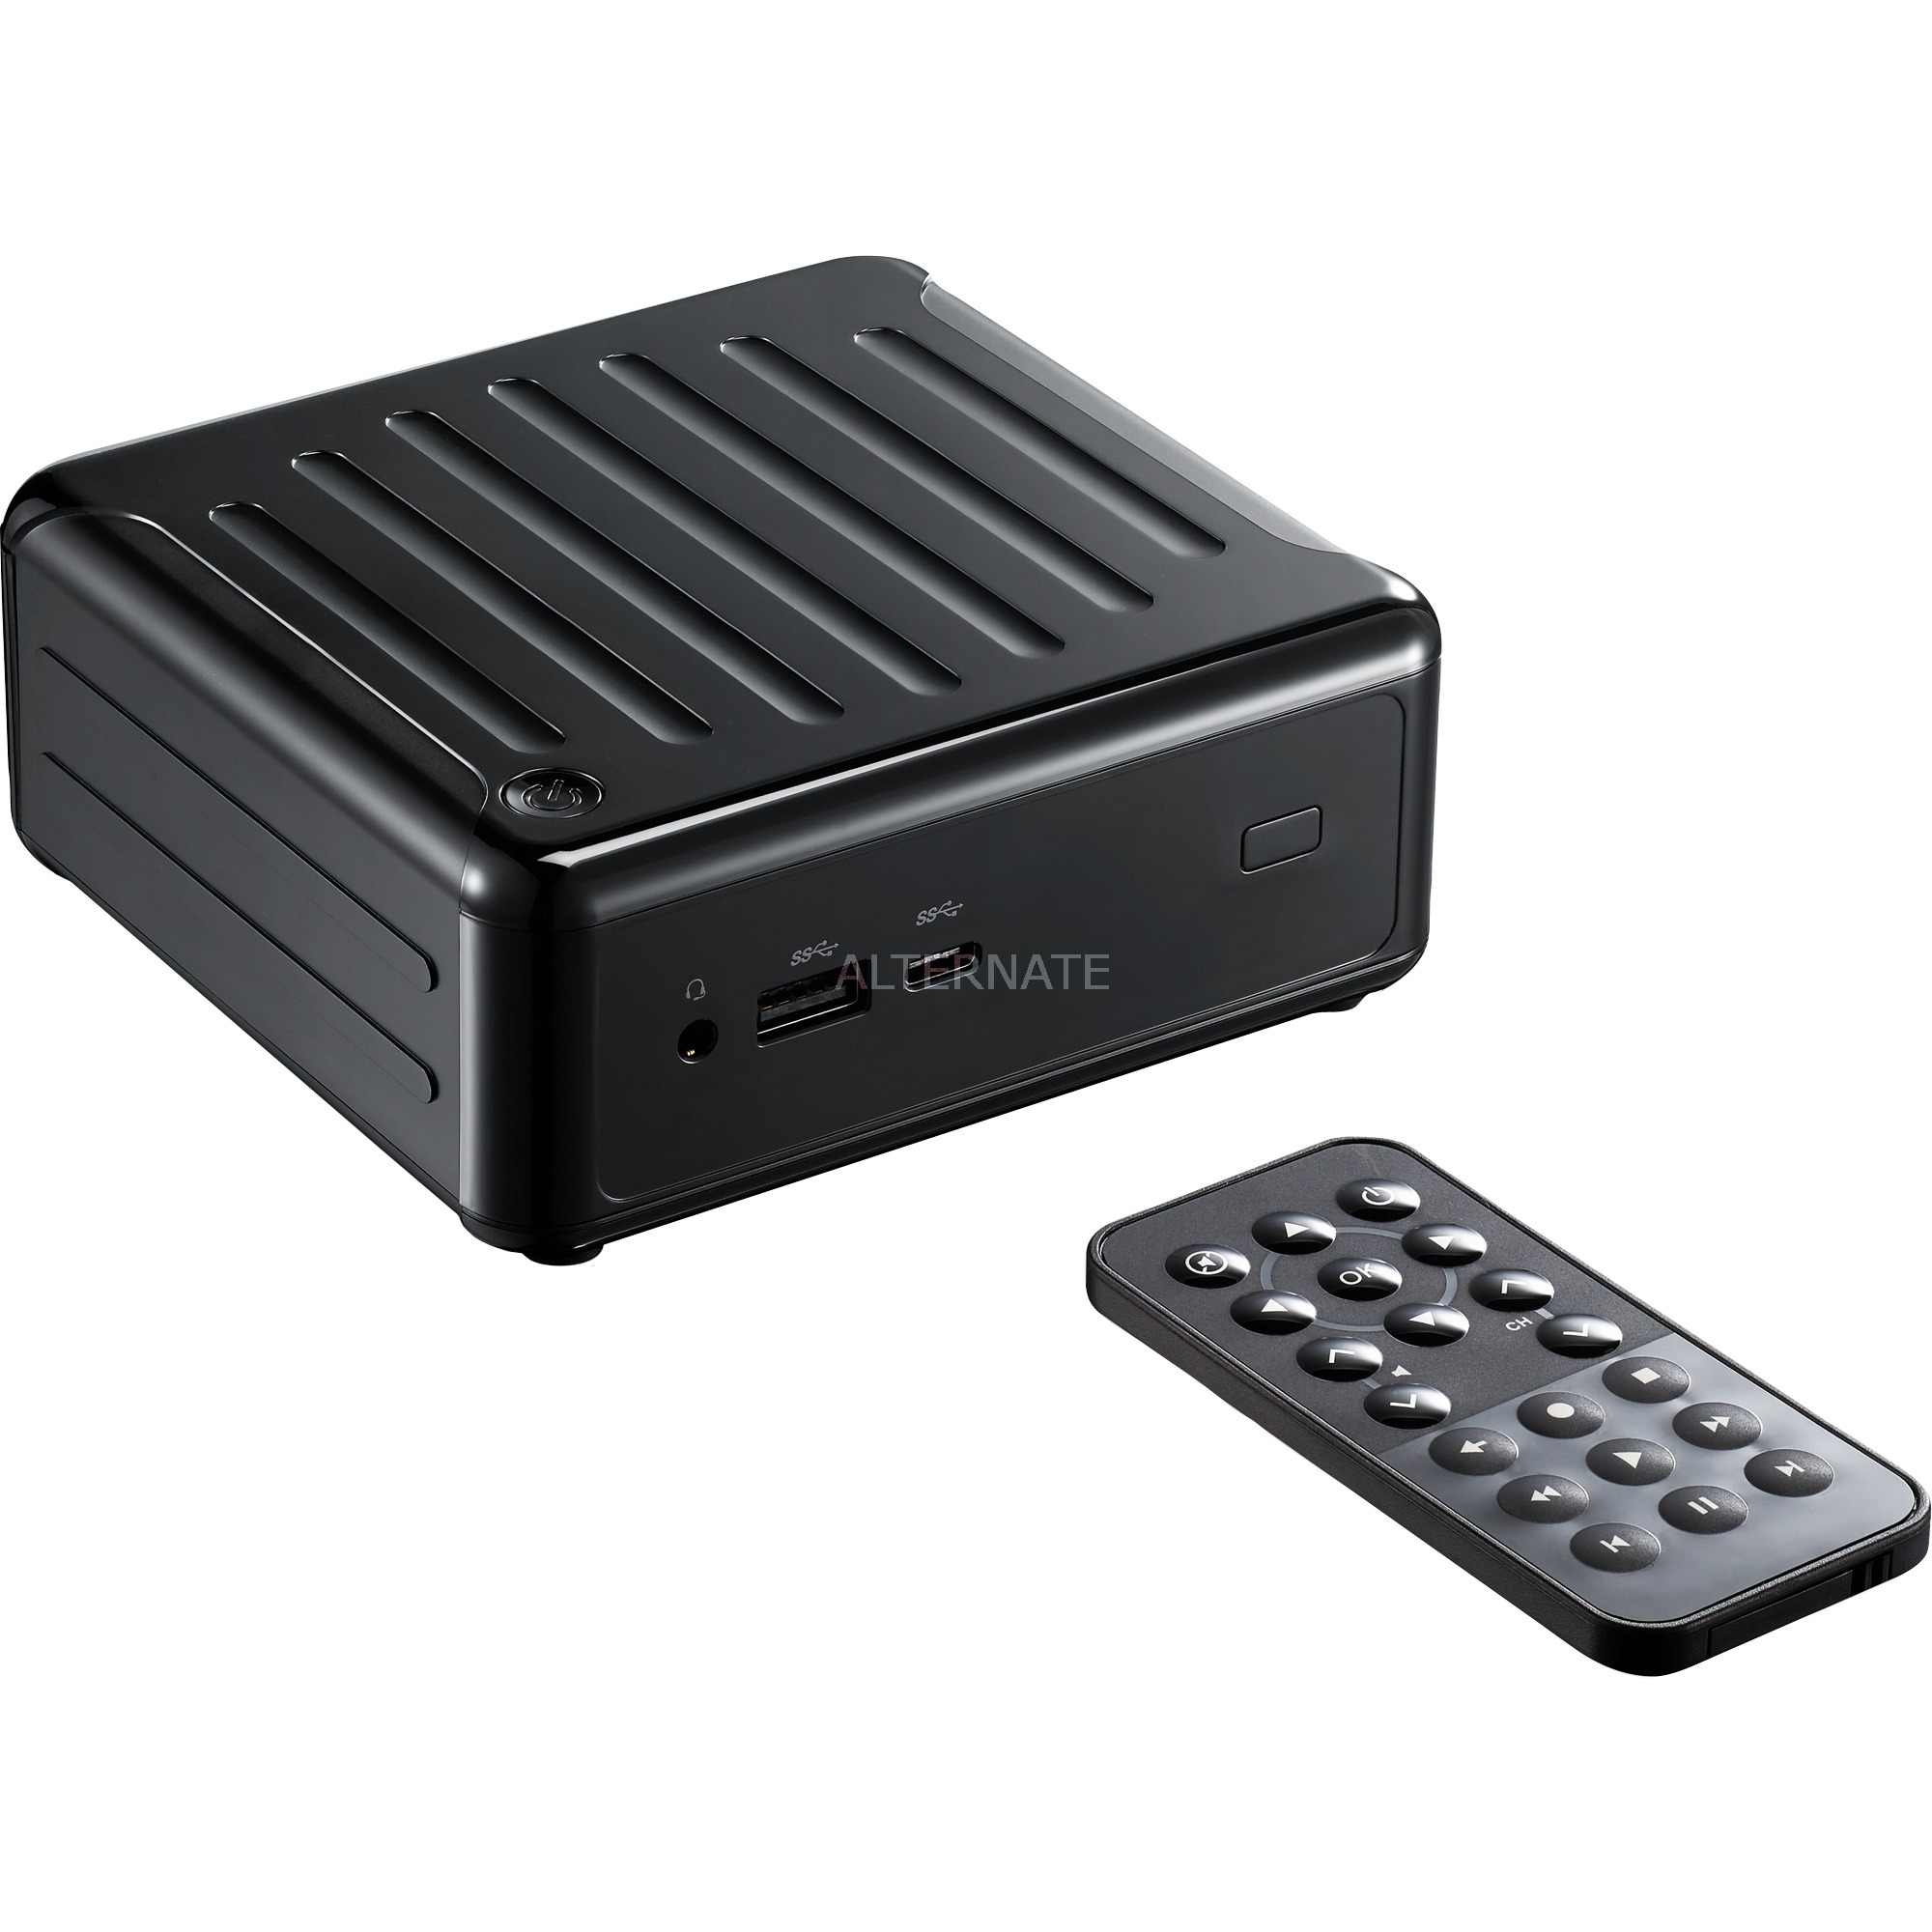 Beebox S 7100U/B/BB 2.4GHz i3-7100U 0,6L mini PC Noir, Barebone